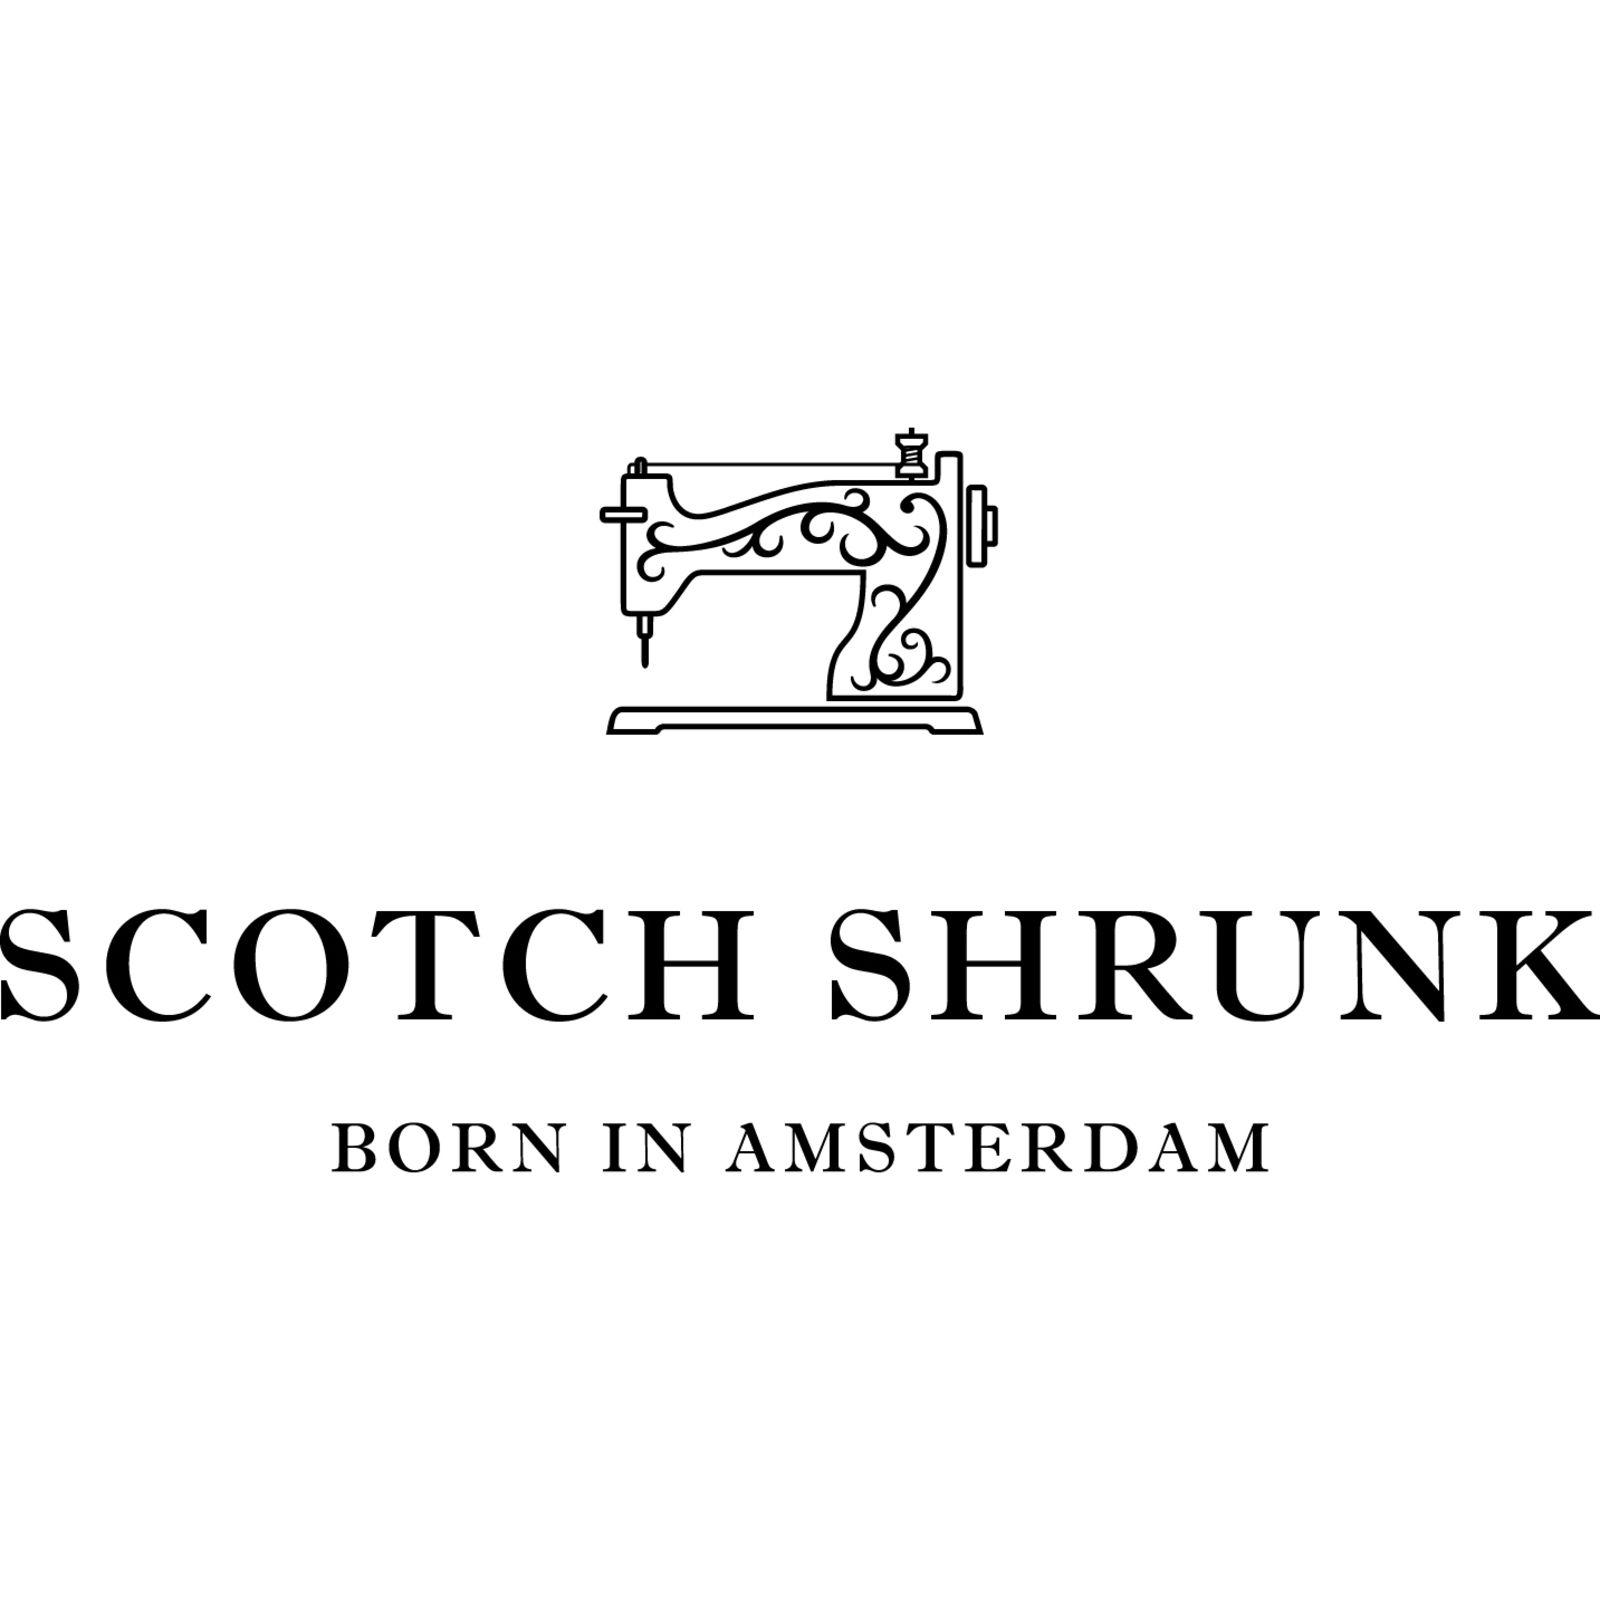 SCOTCH SHRUNK (Image 1)